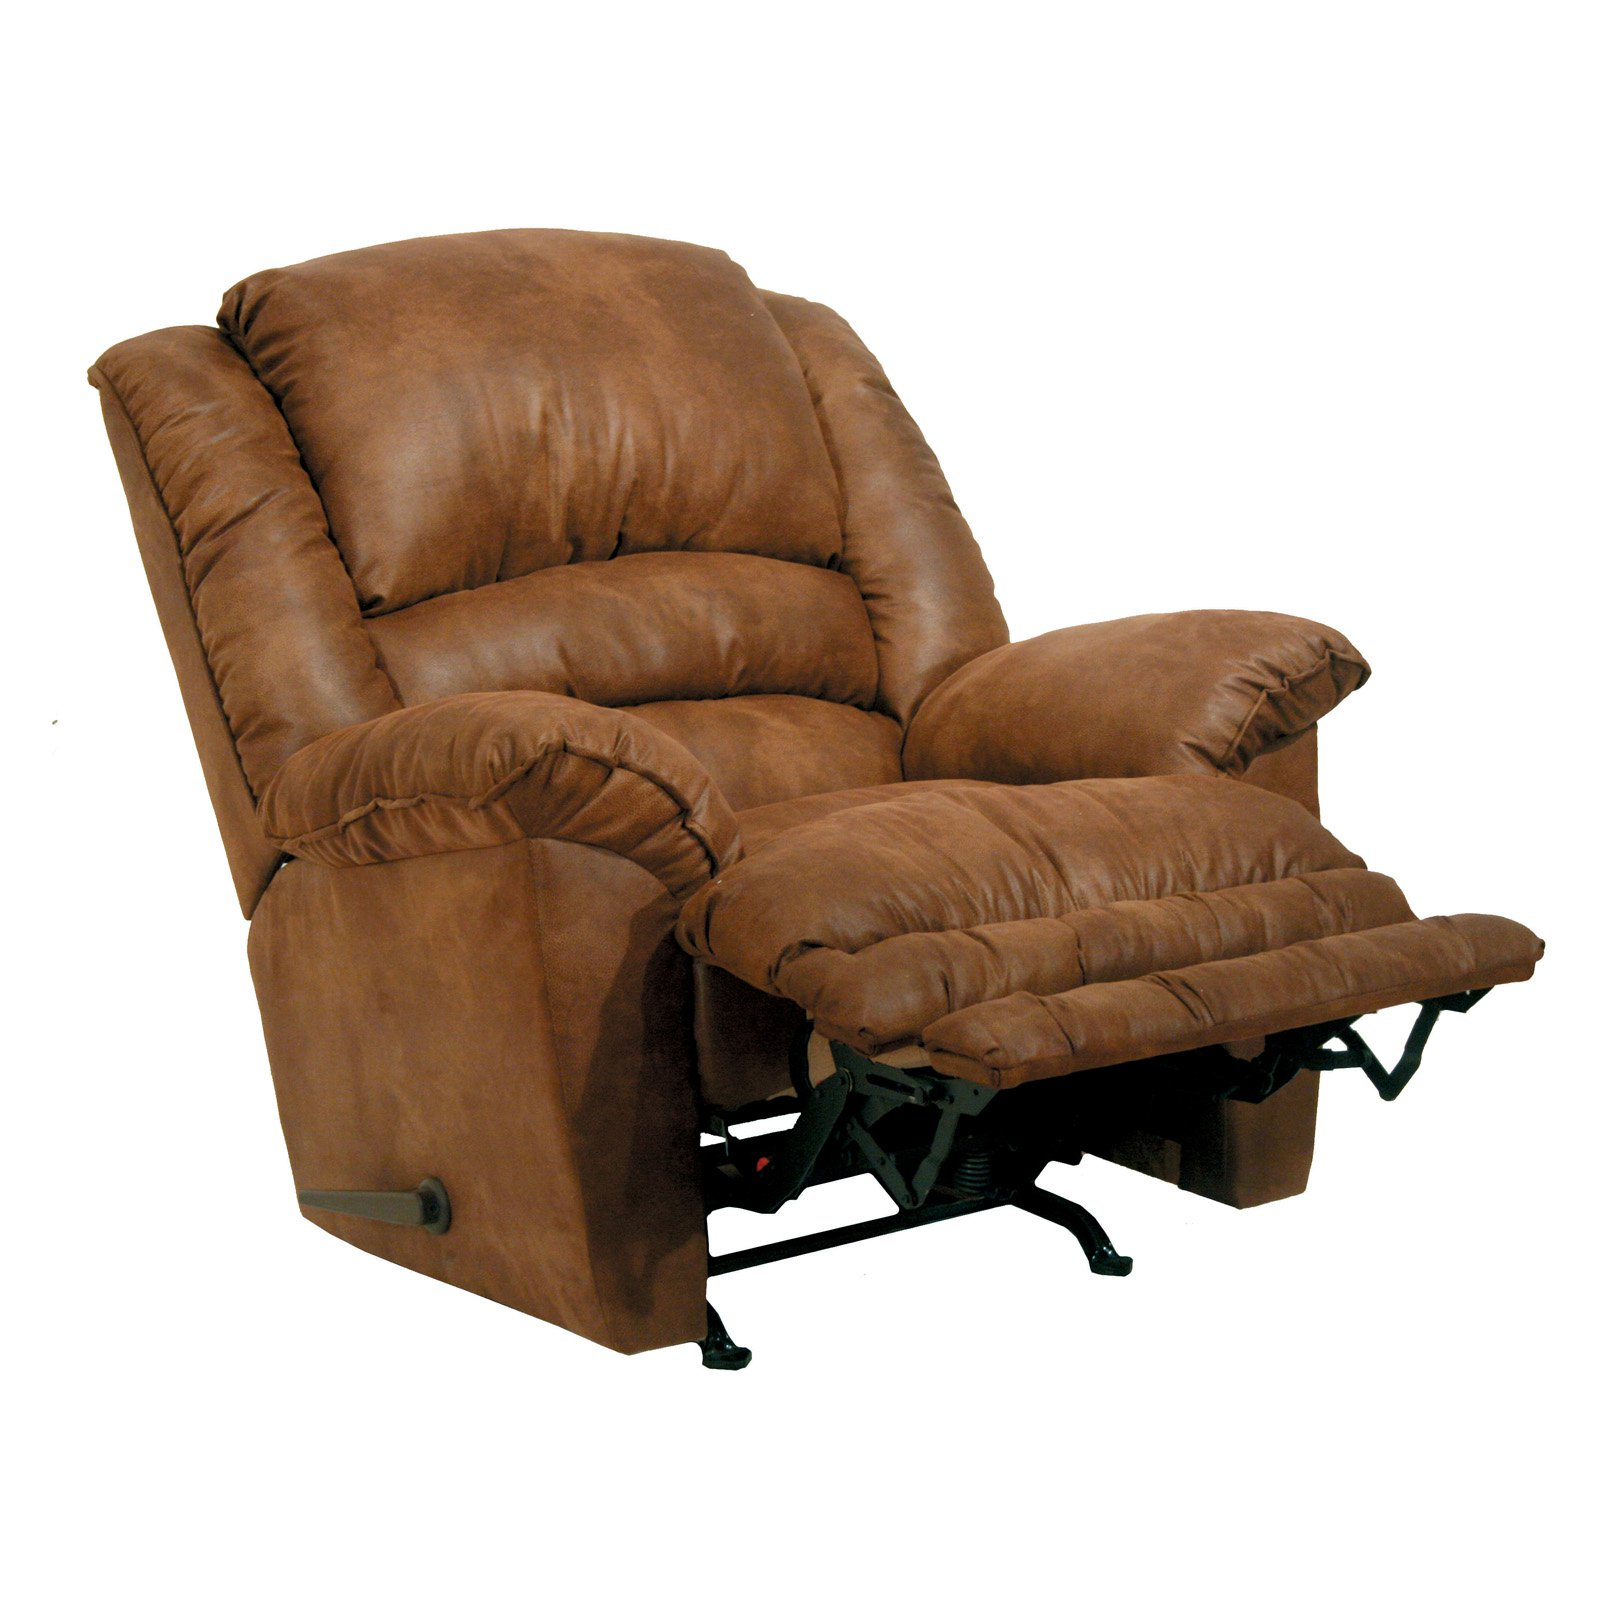 Catnapper Revolver Chaise Rocker Recliner with Heat u0026&; Massage - Walmart.com  sc 1 st  Walmart : chaise rocker recliner - Sectionals, Sofas & Couches